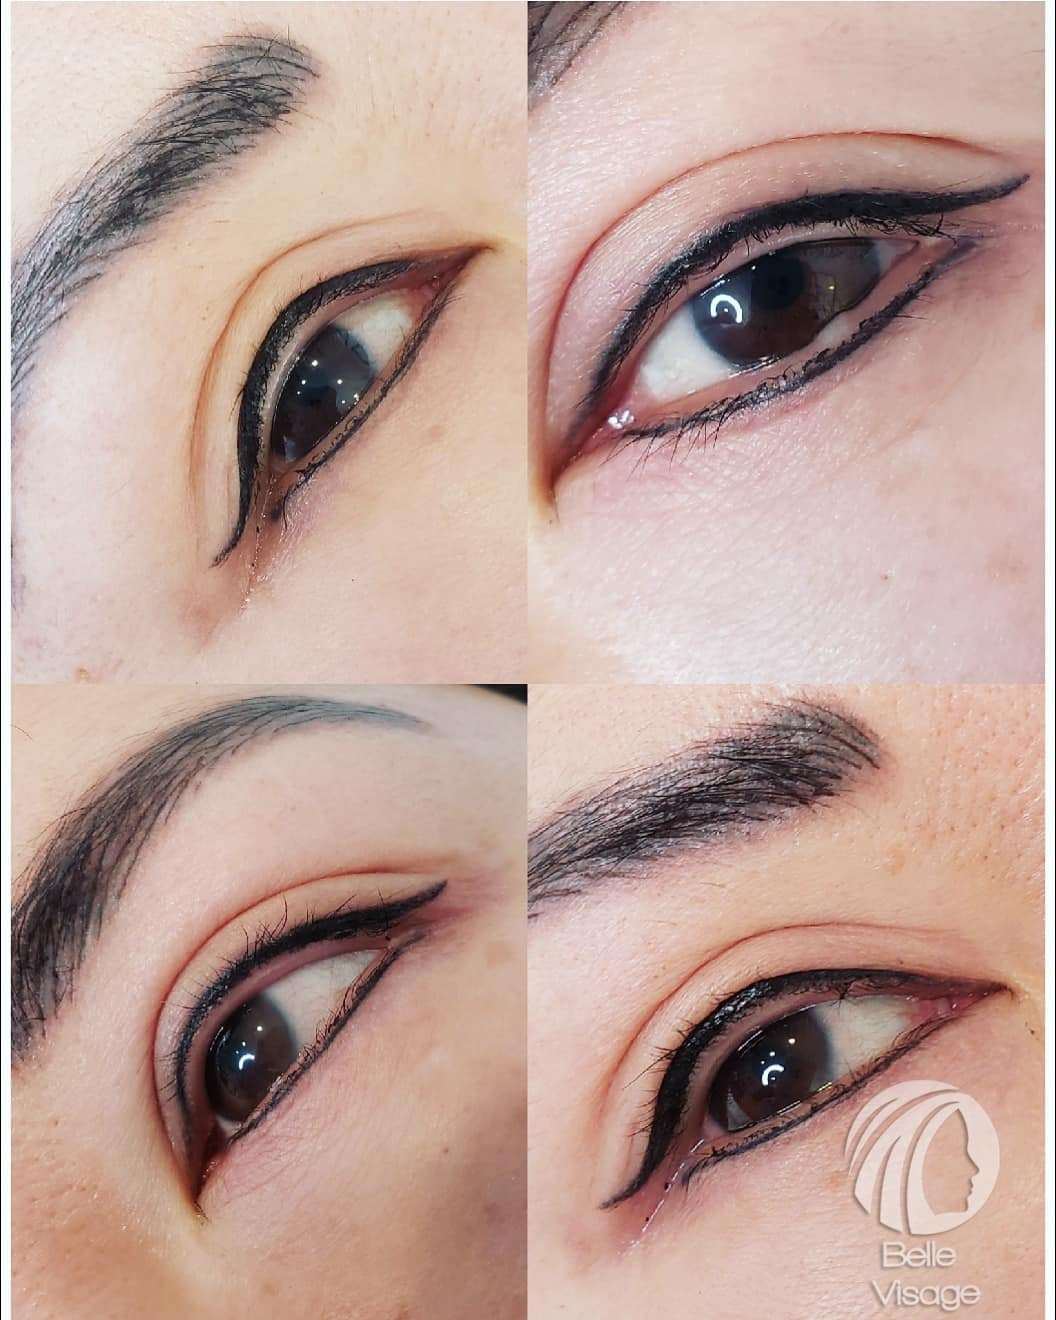 before and after view of permanent eyebrow and eyeliner